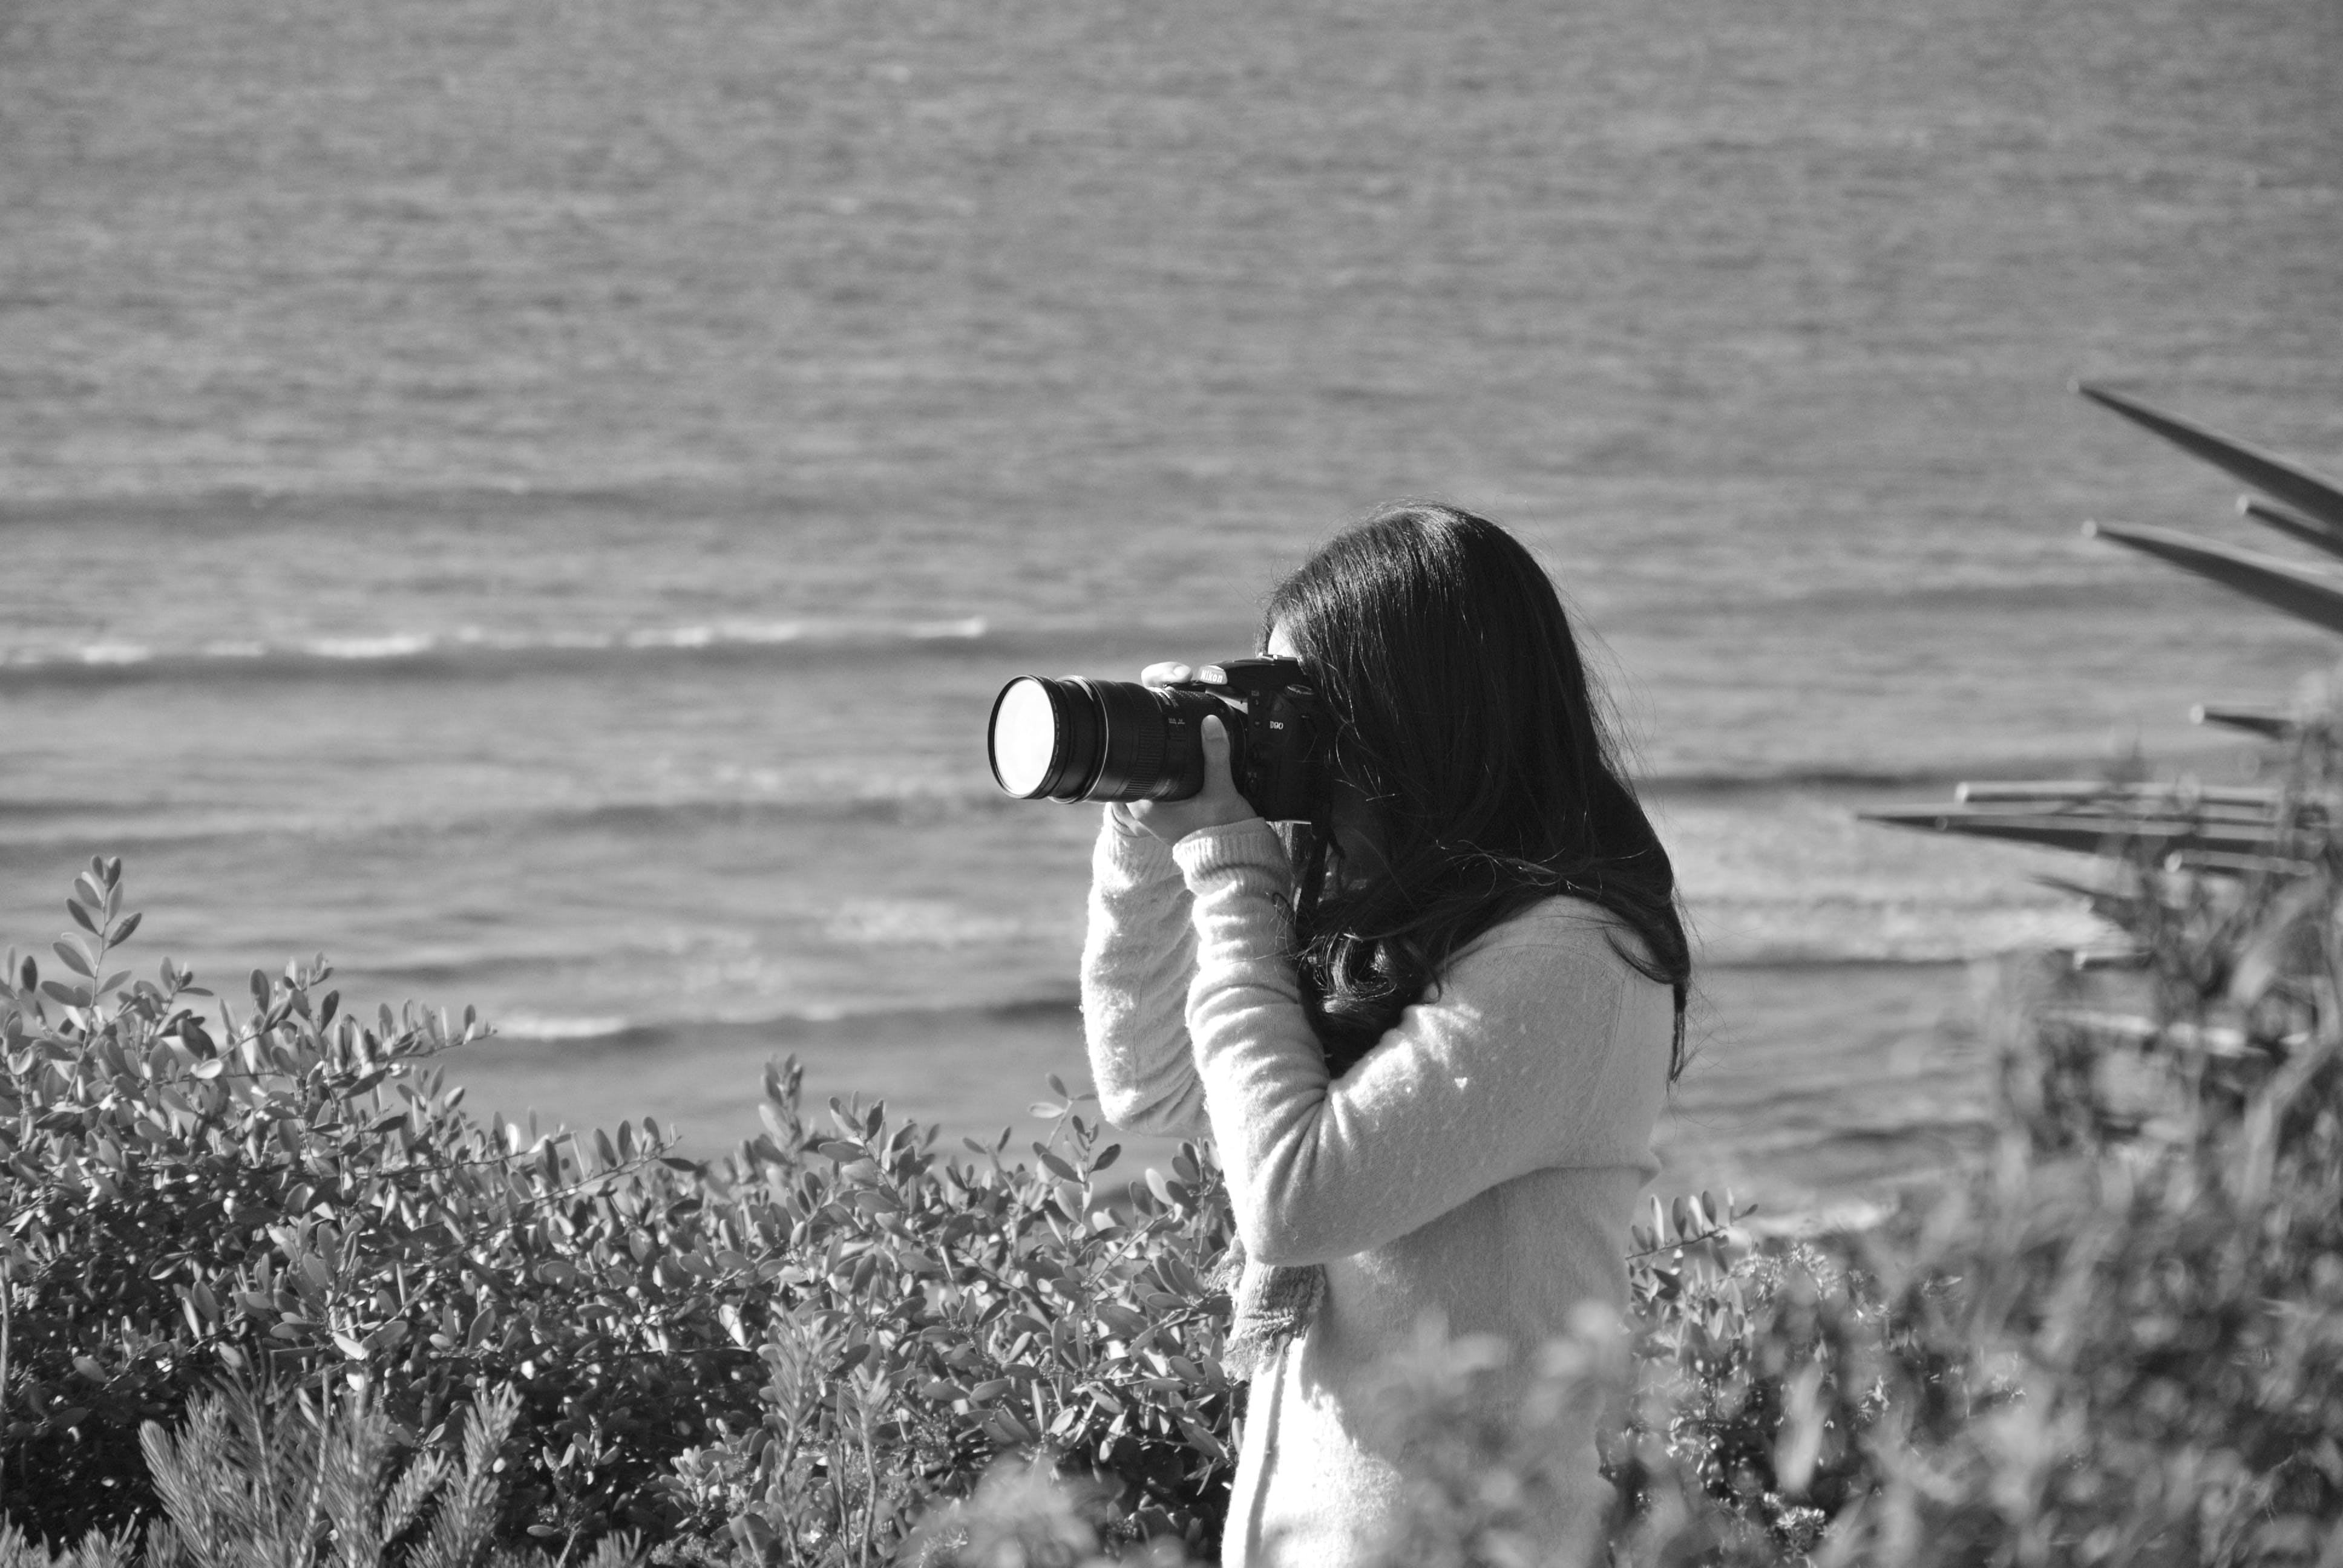 Grayscale Photograph of a Woman Using Dslr Camera